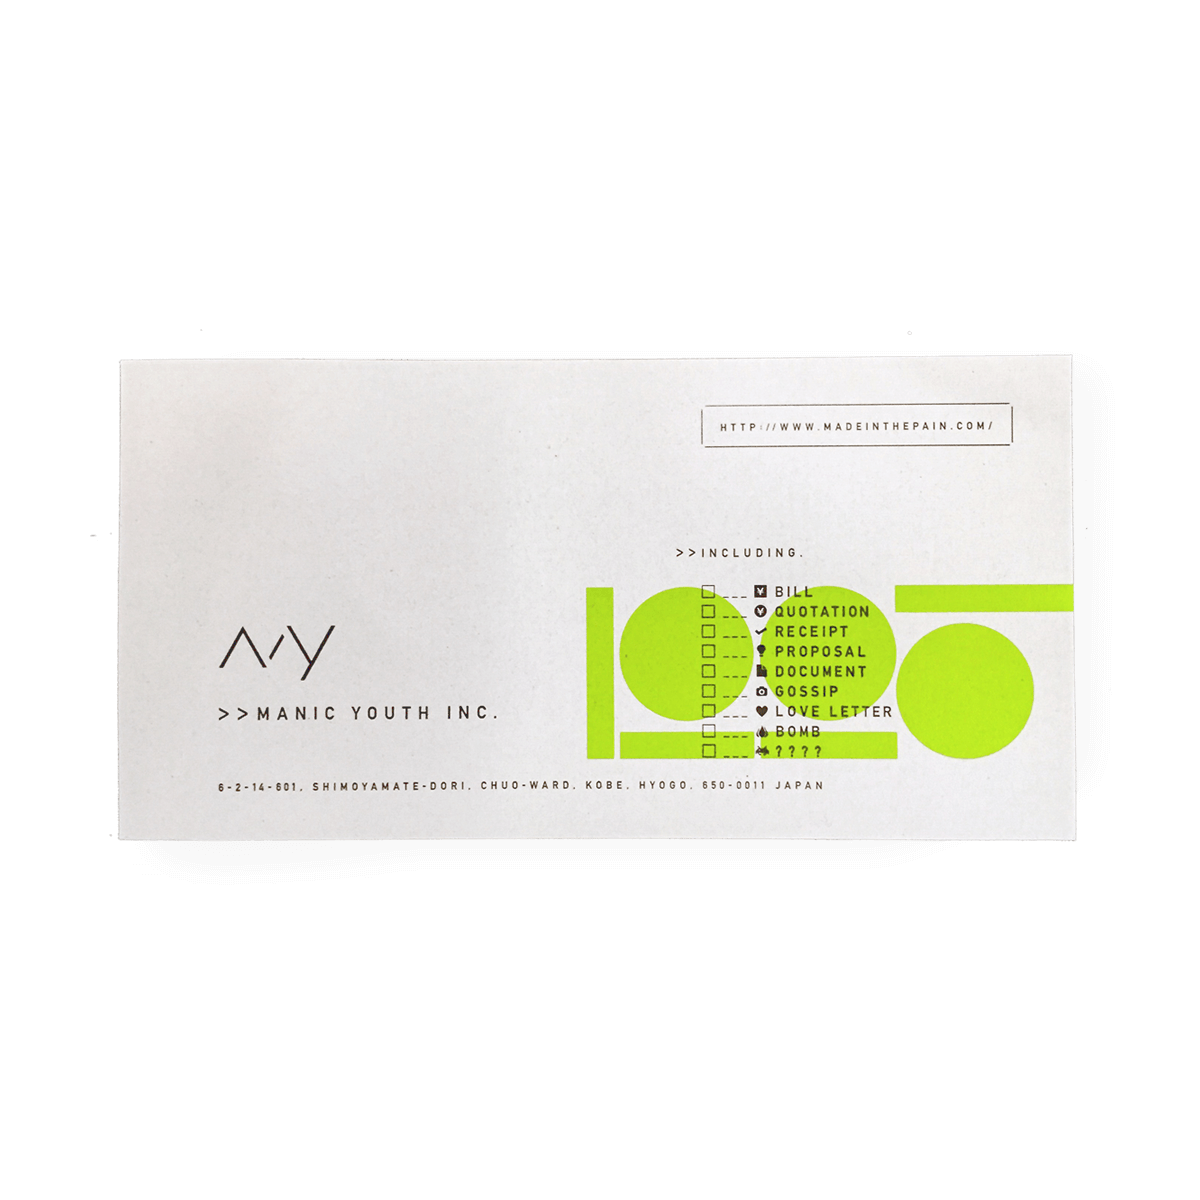 Manic Youth Inc. Corporate Envelope